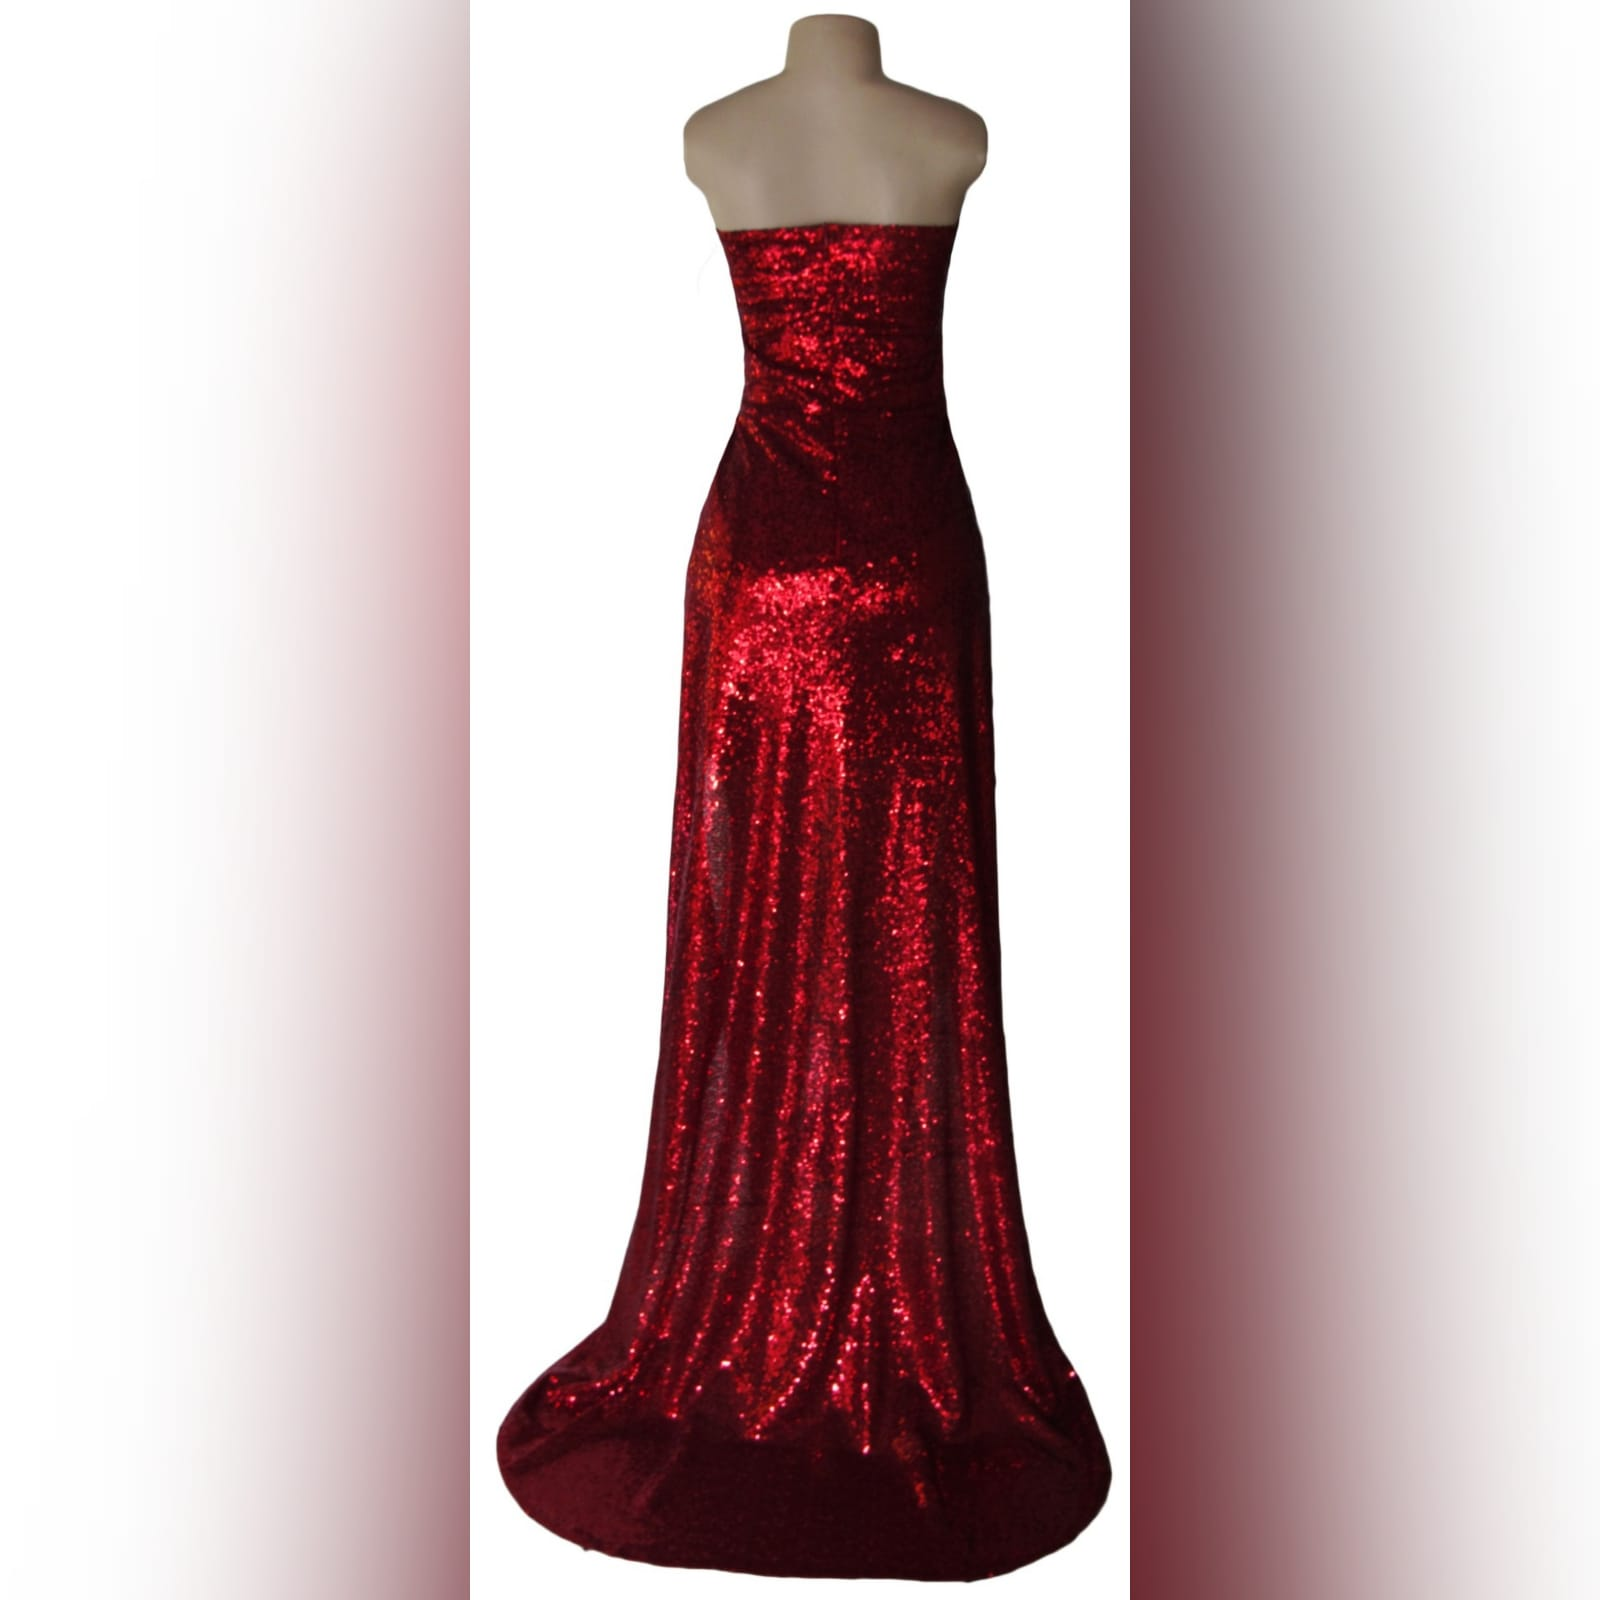 21st birthday party evening dress in red 4 red fully sequins evening dress for a 21st birthday party. The dress creates the illusion of a 2 piece with a cross busted bodice showing tummy, a short pencil skirt with a back overlayer creating a train.